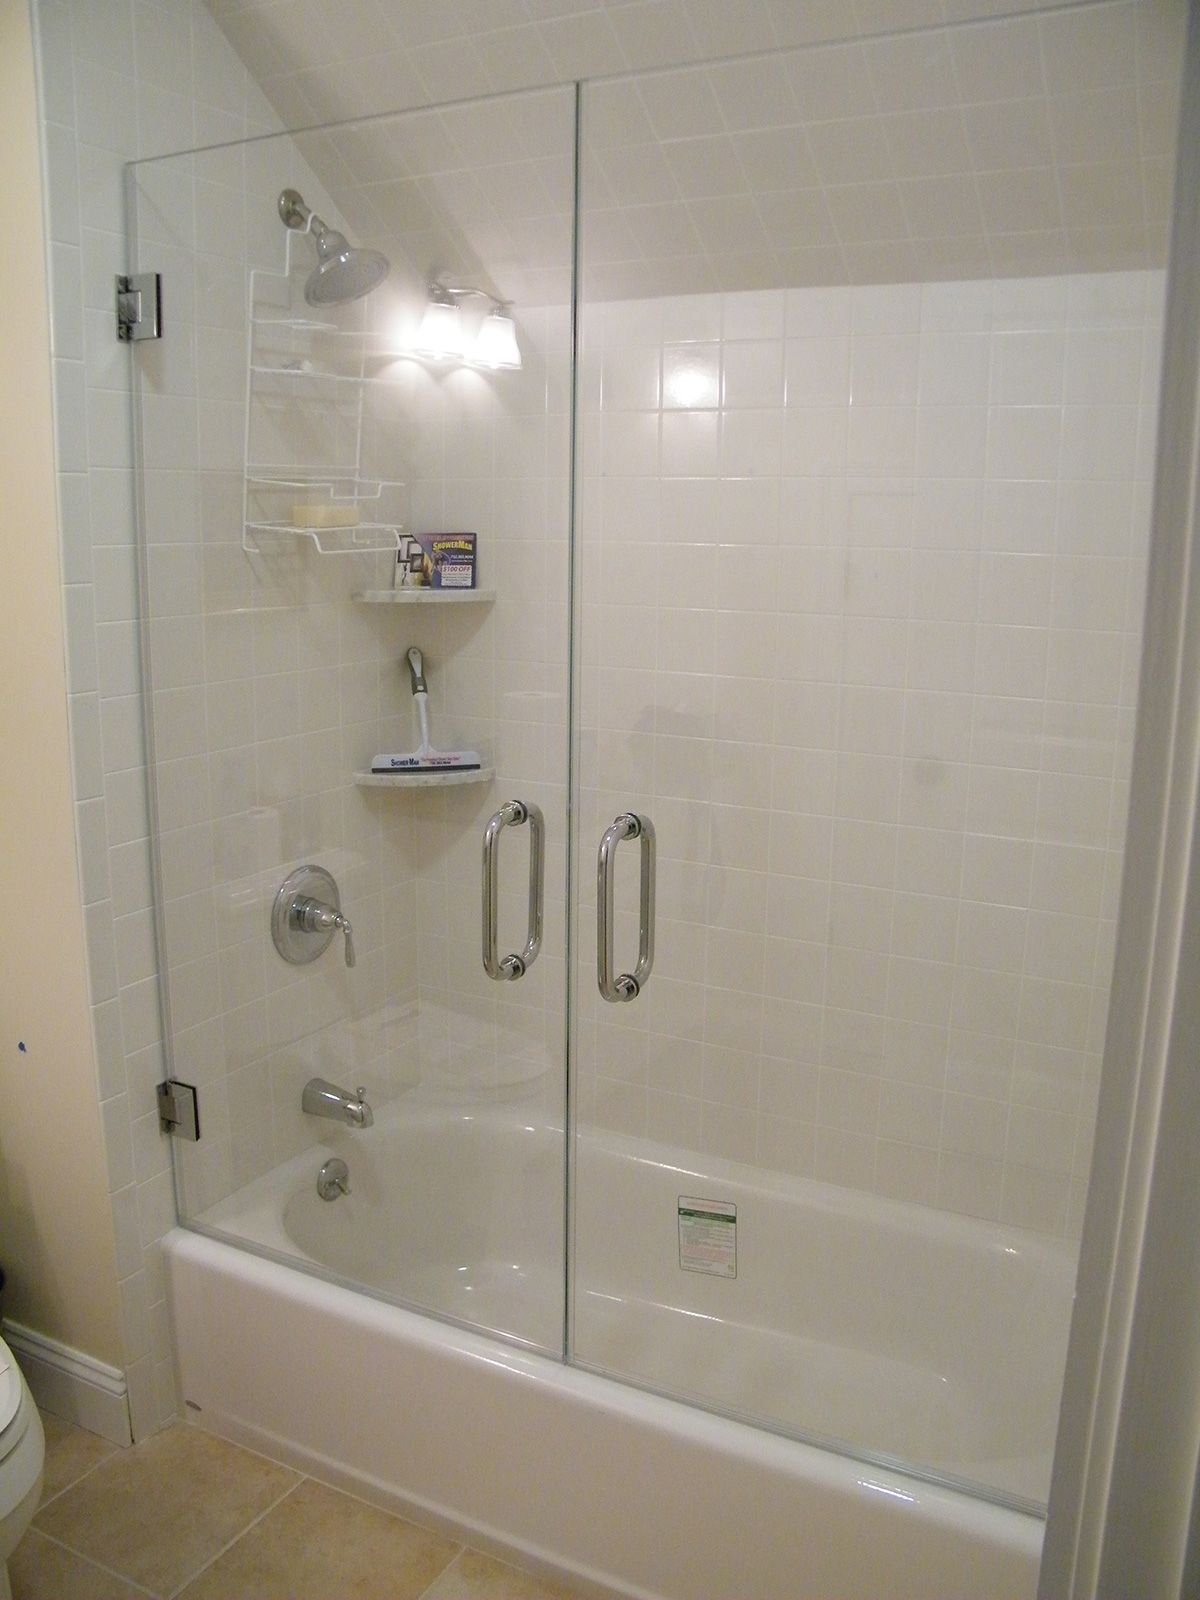 Bathroom Renovations Nj Renovation Ideas Shower Remodeling Door Replacement Manan Showerman Com